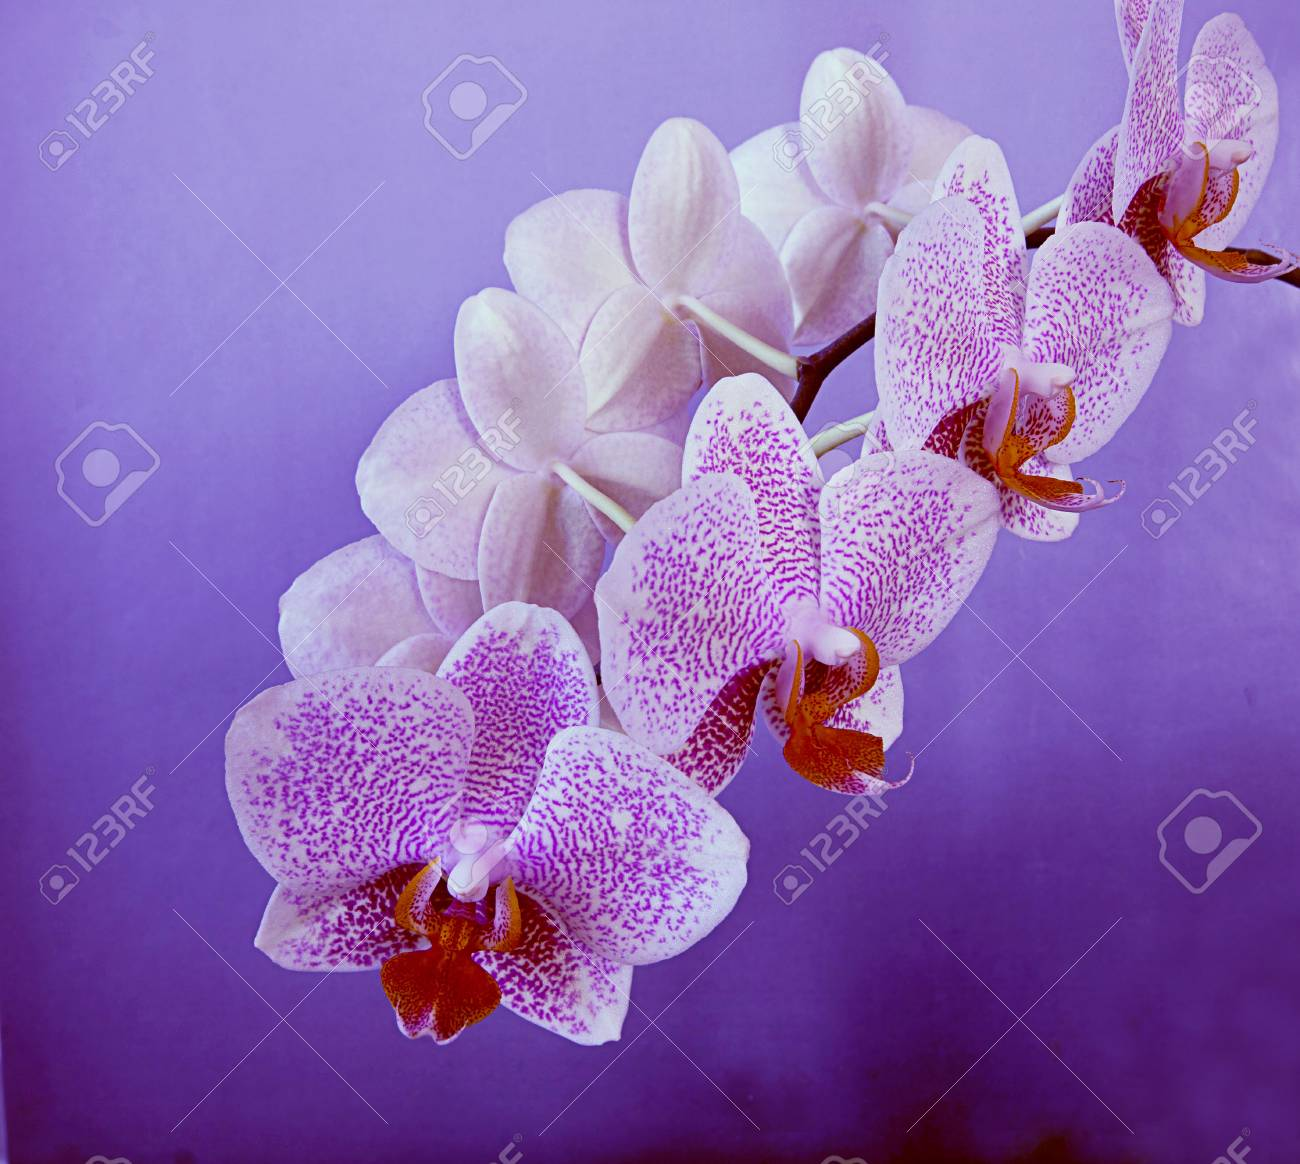 A beautiful bloomy branch of Phalaenopsis orchid on a purple